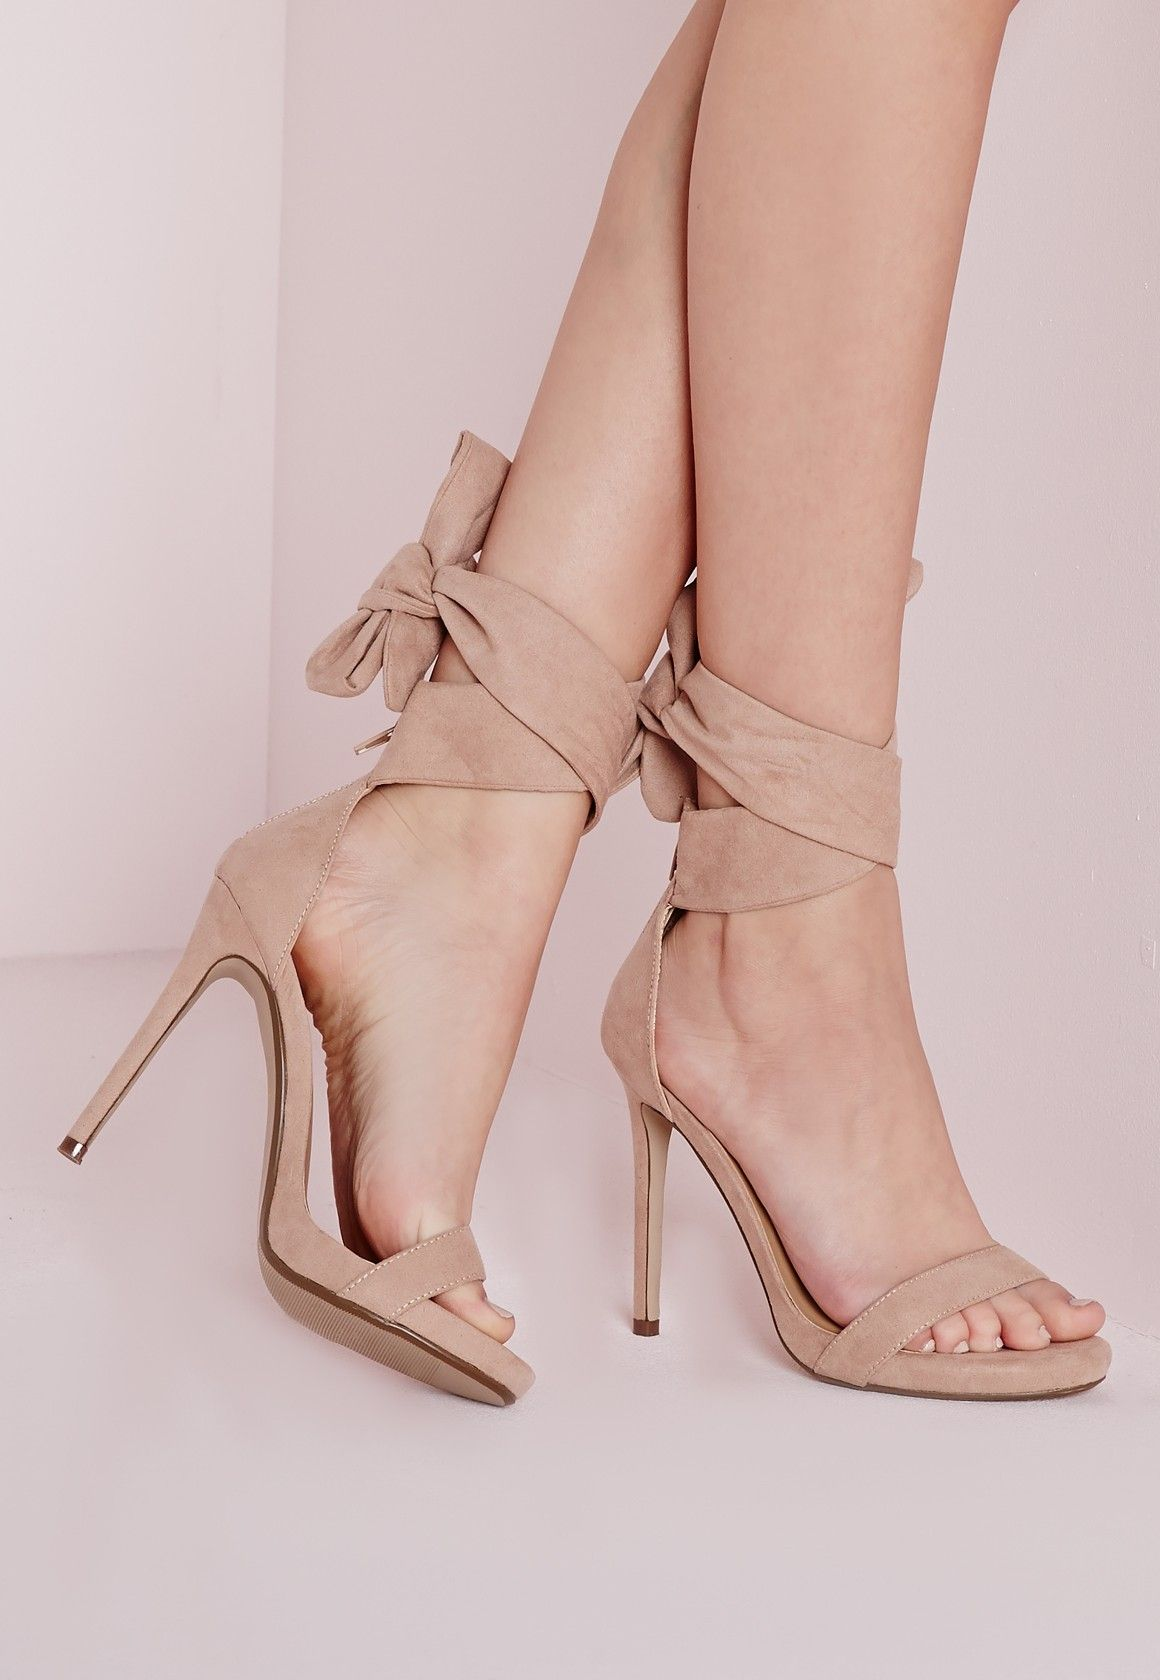 eaa04f9312b Ankle Tie Heeled Sandals Nude - Shoes - High Heels - Missguided